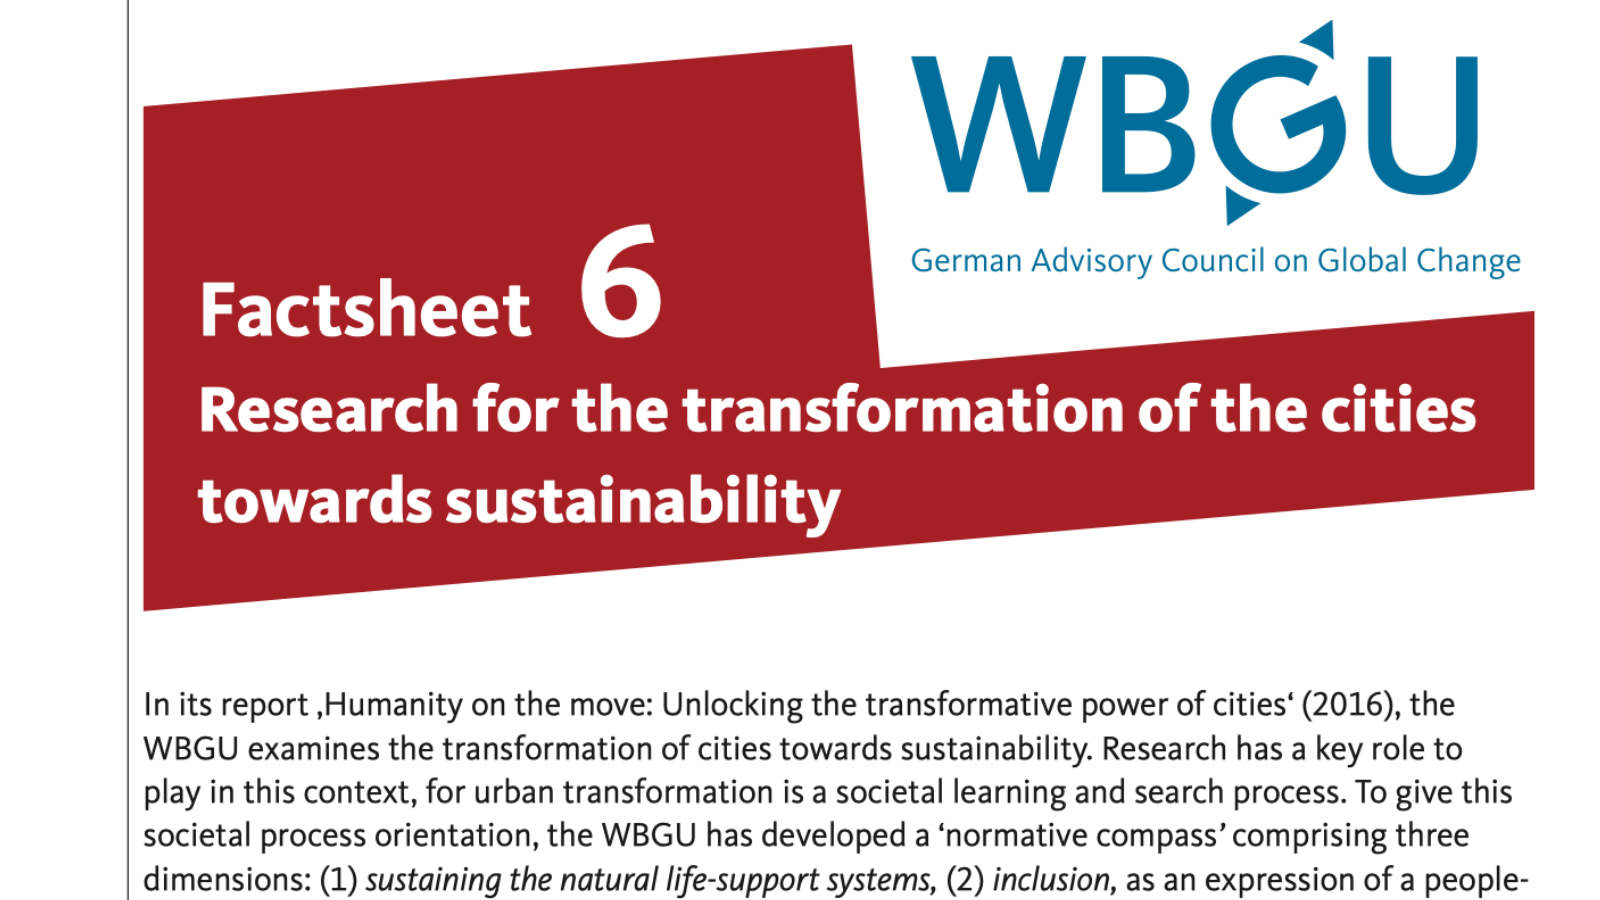 Factsheet: Research for the transformation of the cities towards sustainability